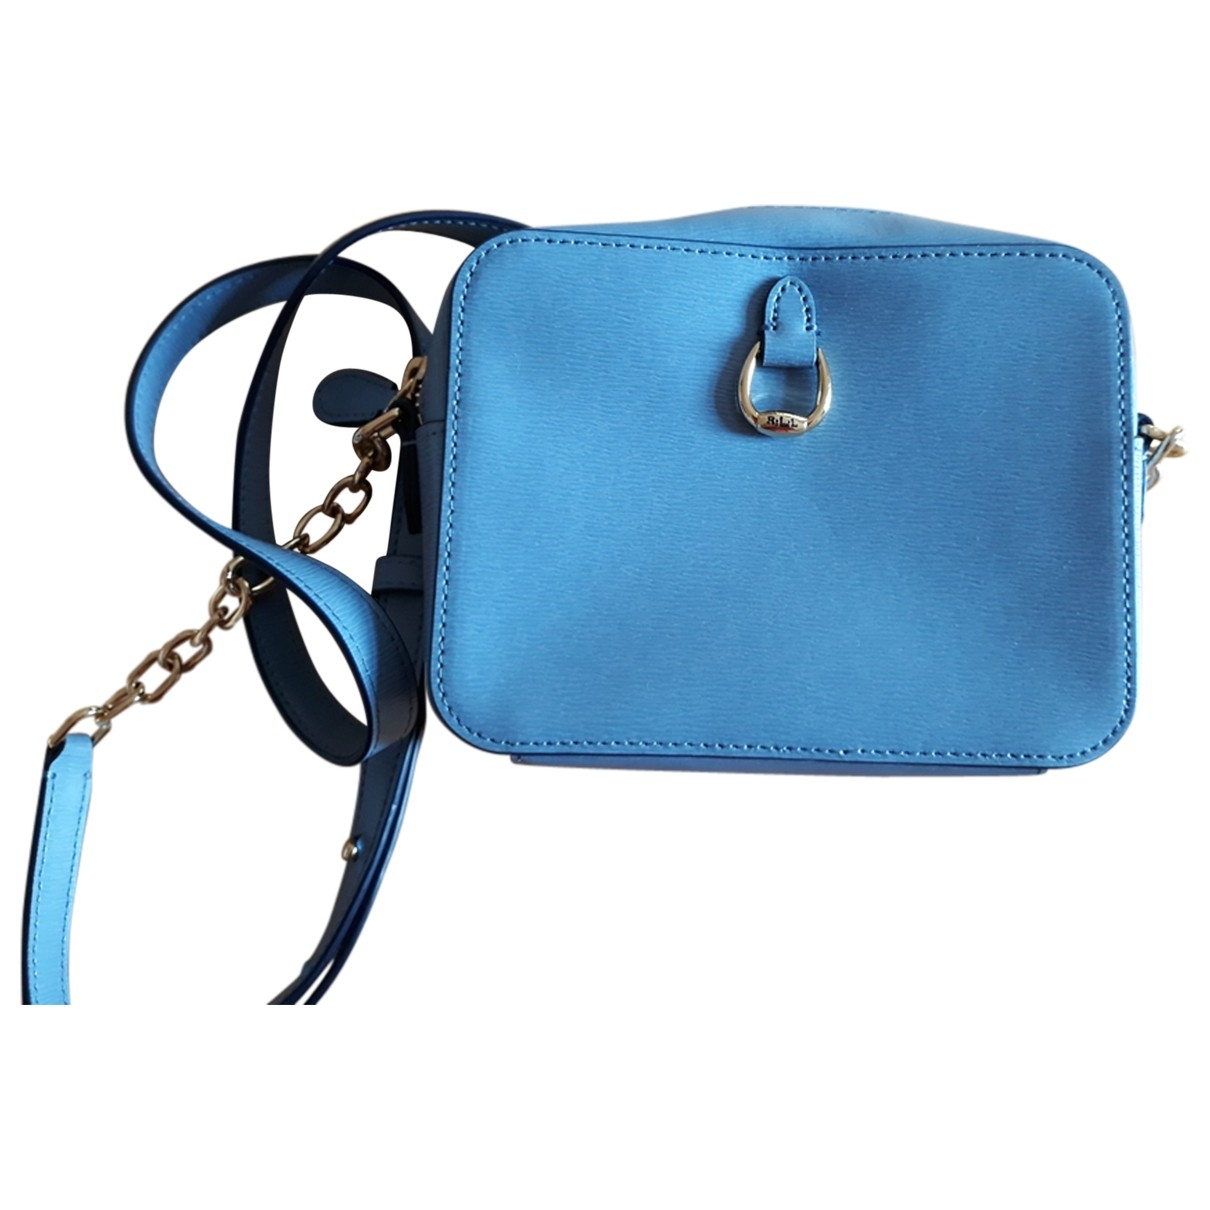 Lauren Ralph Lauren \N Blue Leather handbag for Women \N